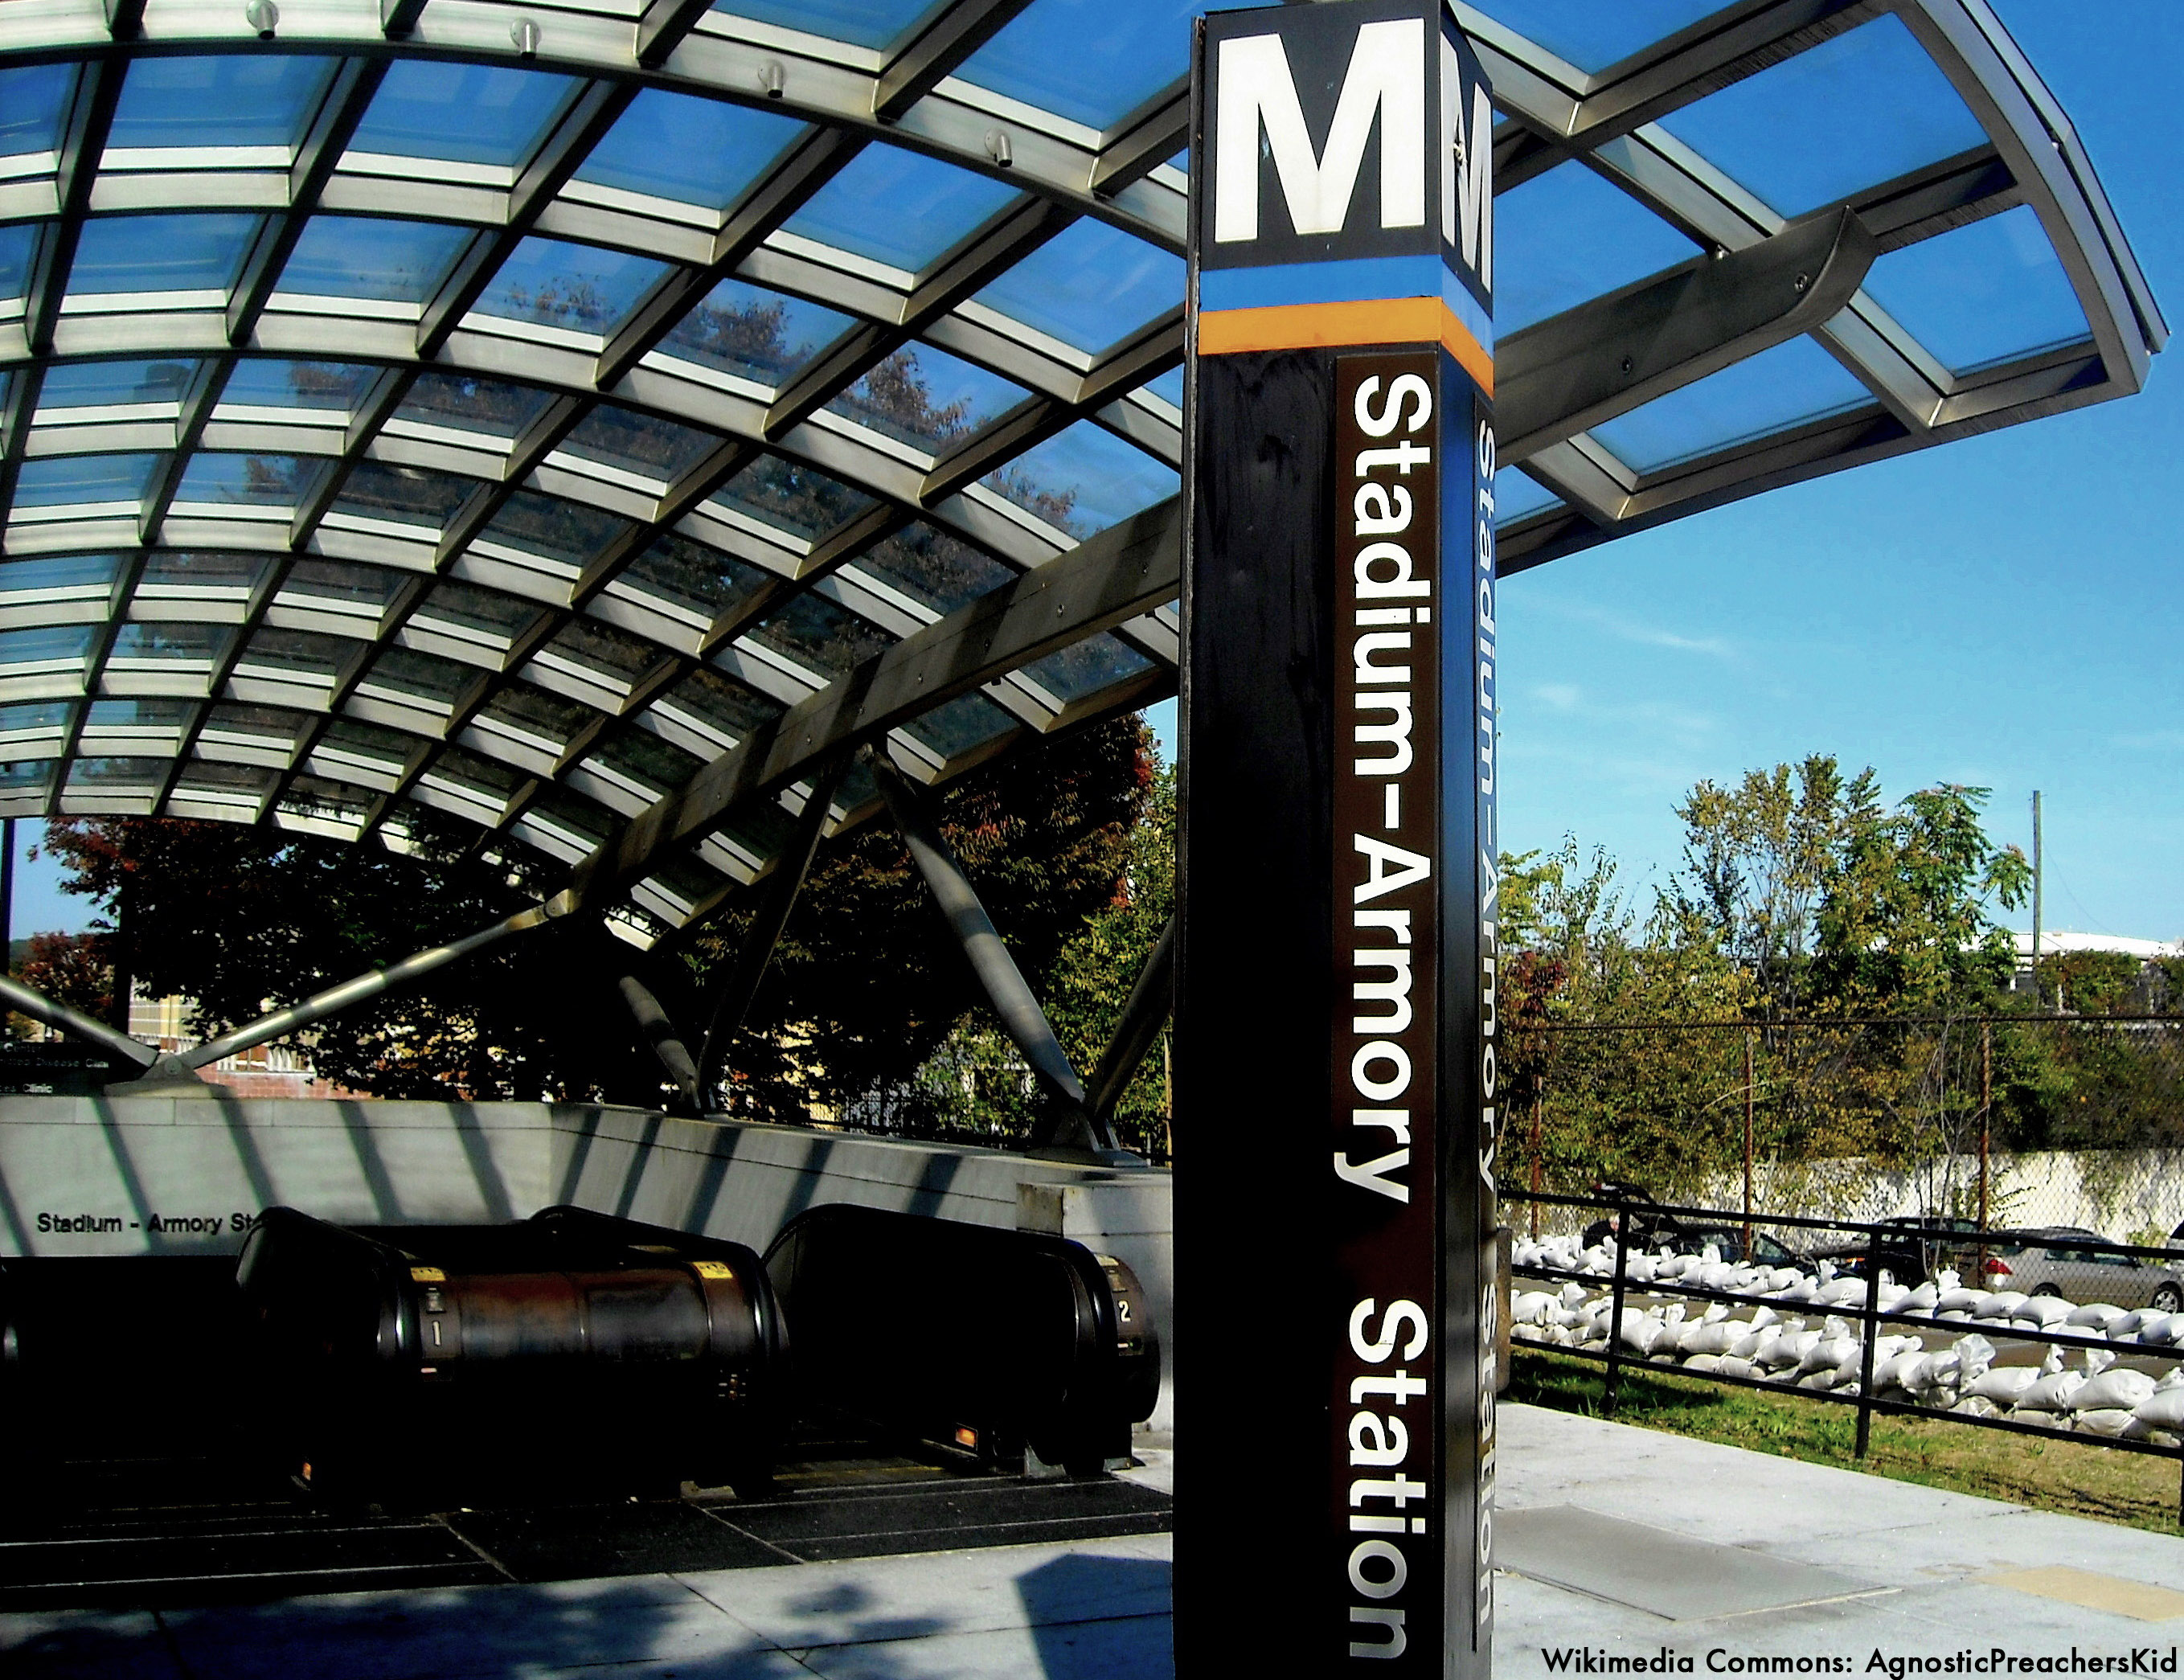 Stadium-Armory_Metro_entrance_copy.jpg